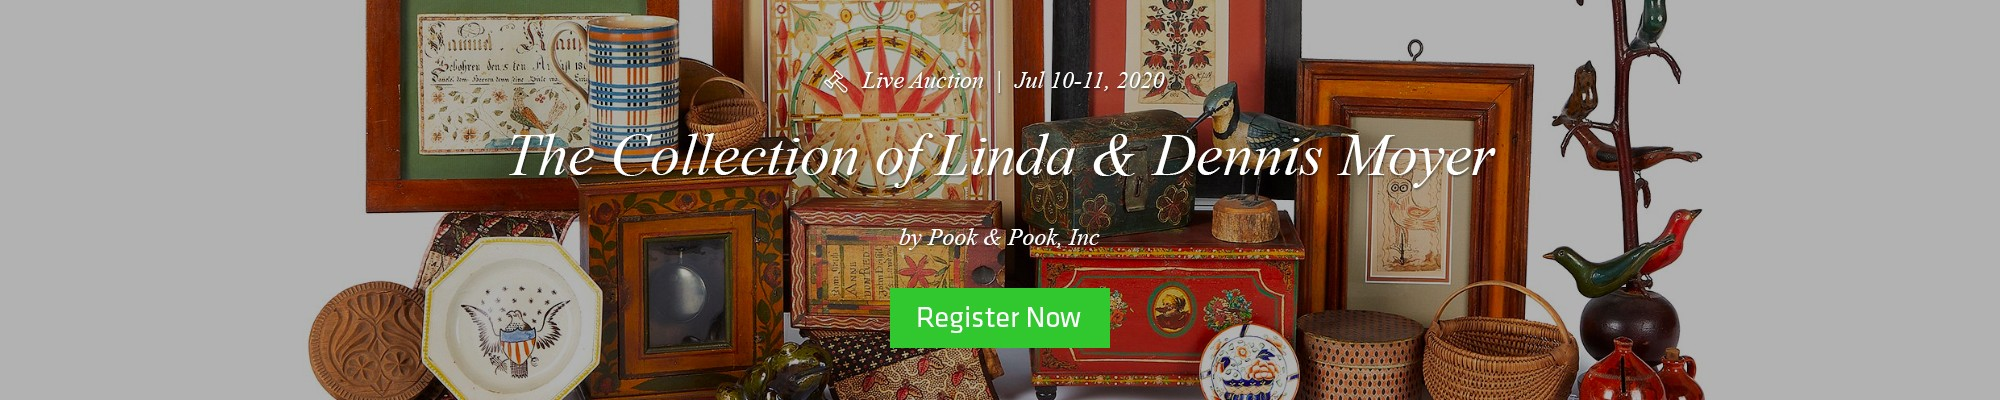 The Collection of Linda & Dennis Moyer